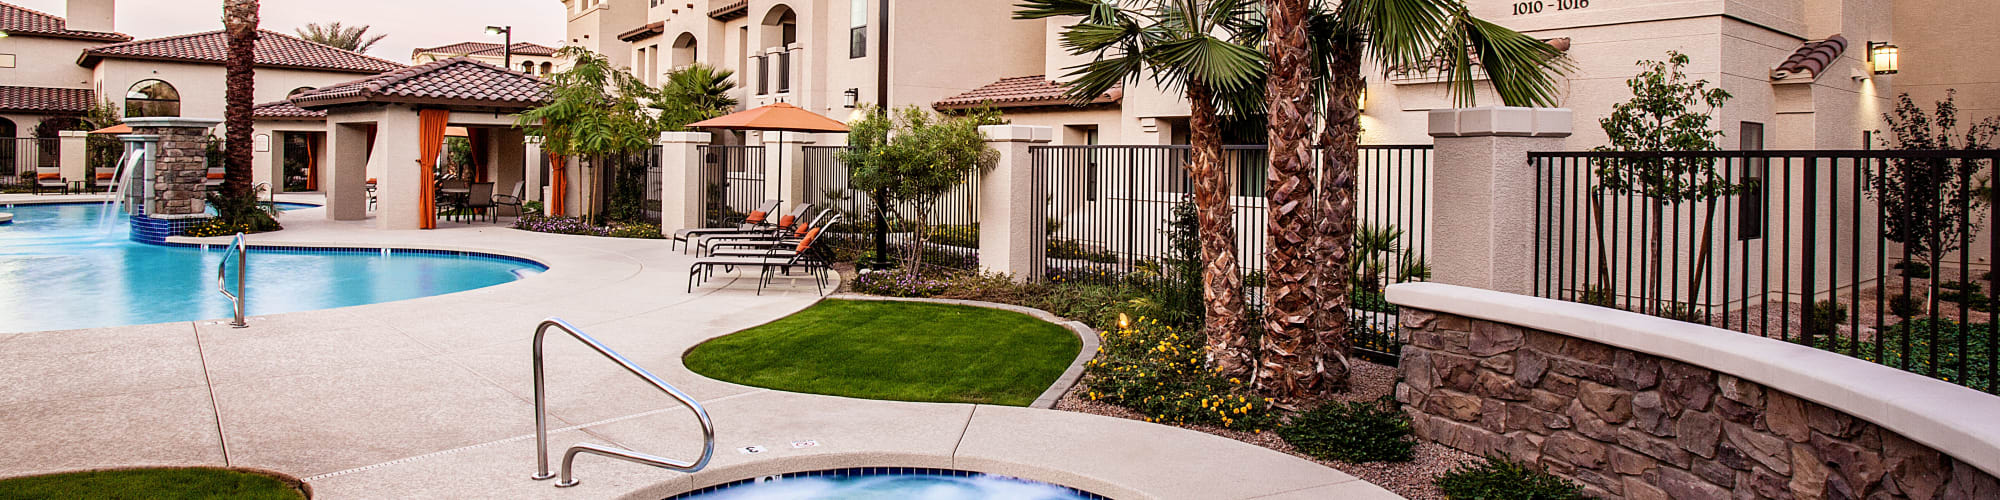 Contact us at San Marquis in Tempe, Arizona